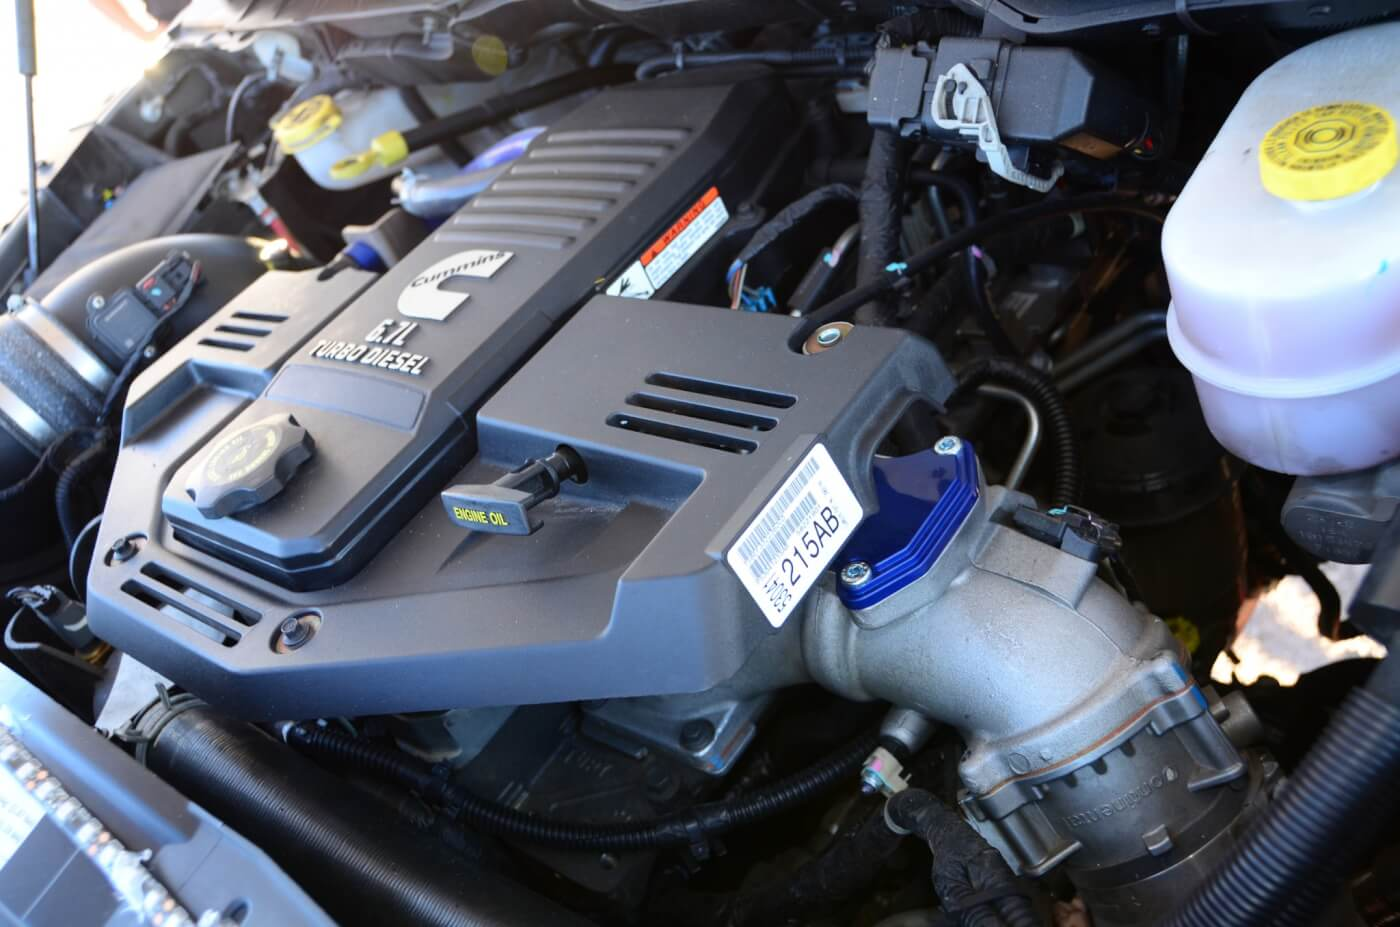 The 6.7L Cummins under the hood was treated to an S&B cold-air intake and a Diamond Eye five-inch turbo-back exhaust, as well as an H&S Mini Maxx Race Tuner.